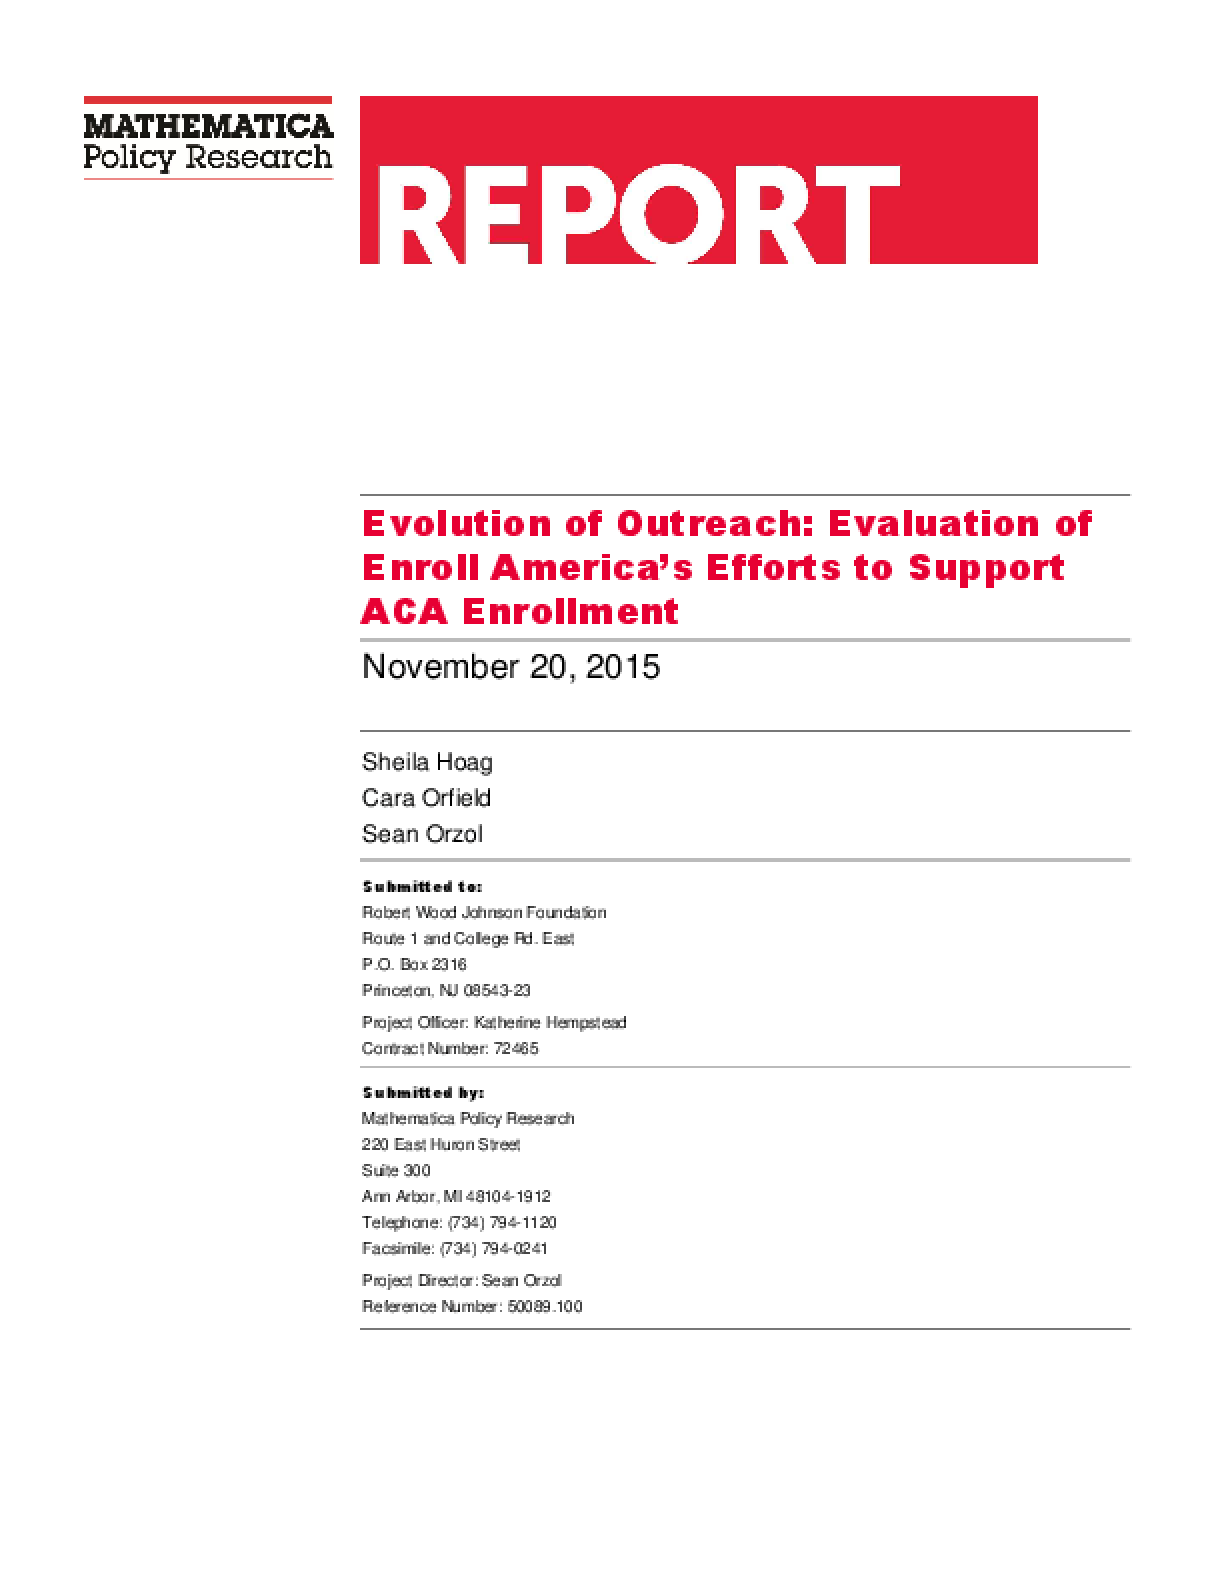 Evaluation of Outreach: Evaluation of Enroll America's Efforts to Support ACA Enrollment